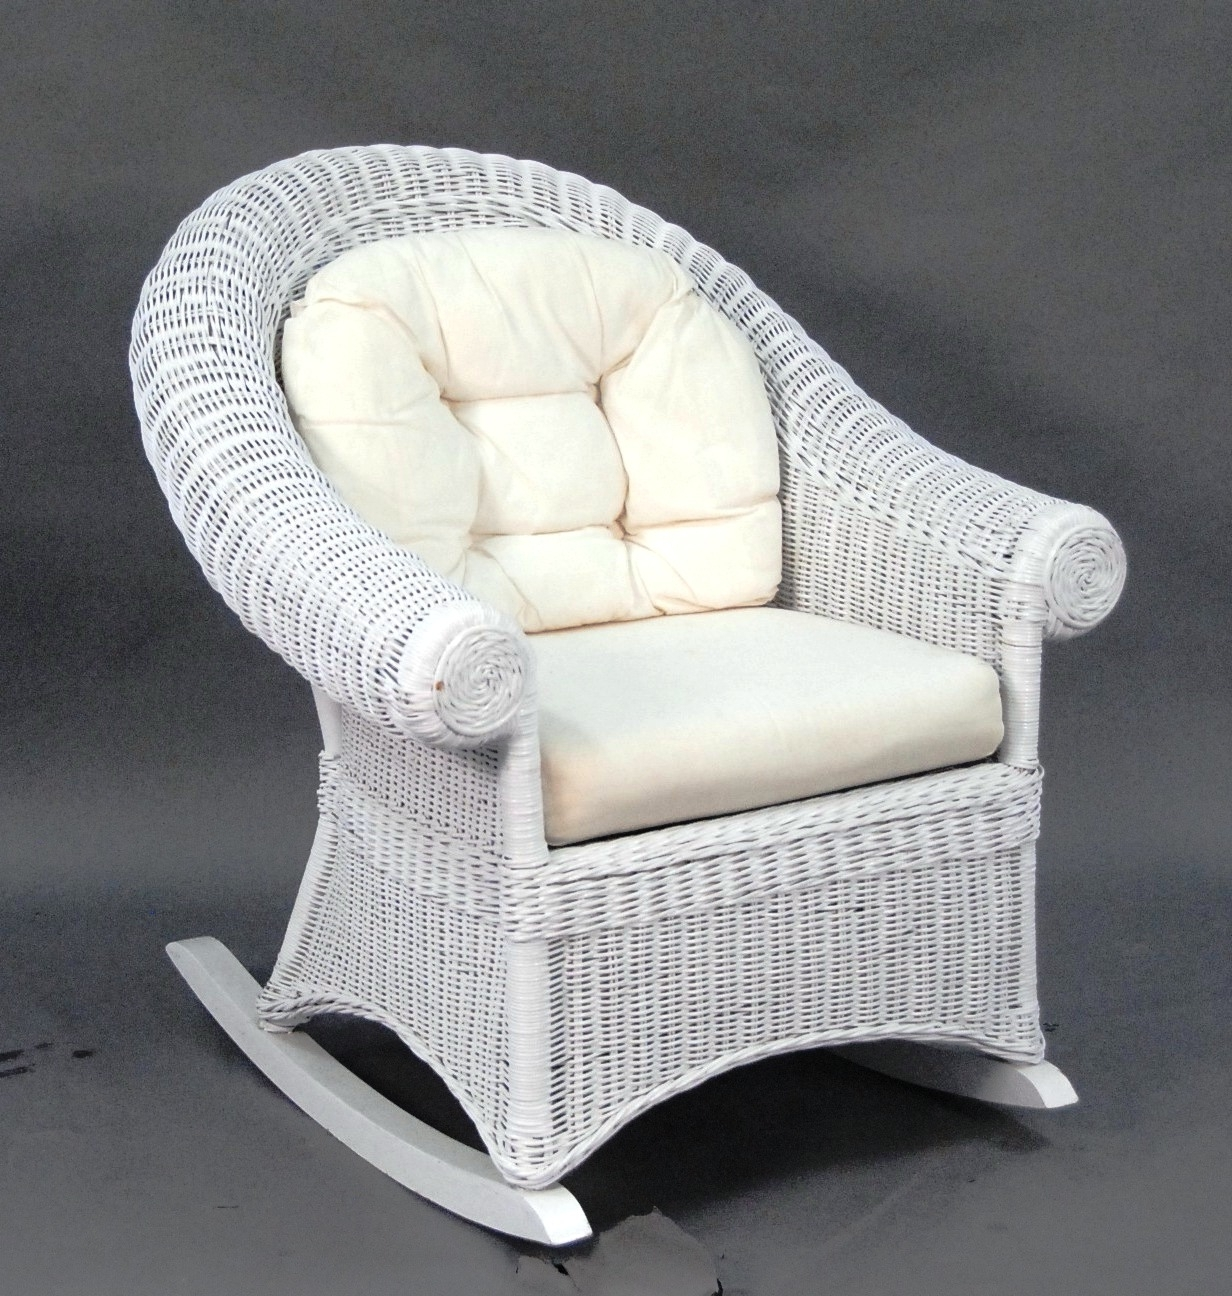 Preferred Rocking Chair : Wicker Rocking Chair With Springs , With Regard To Vintage Wicker Rocking Chairs (View 11 of 20)